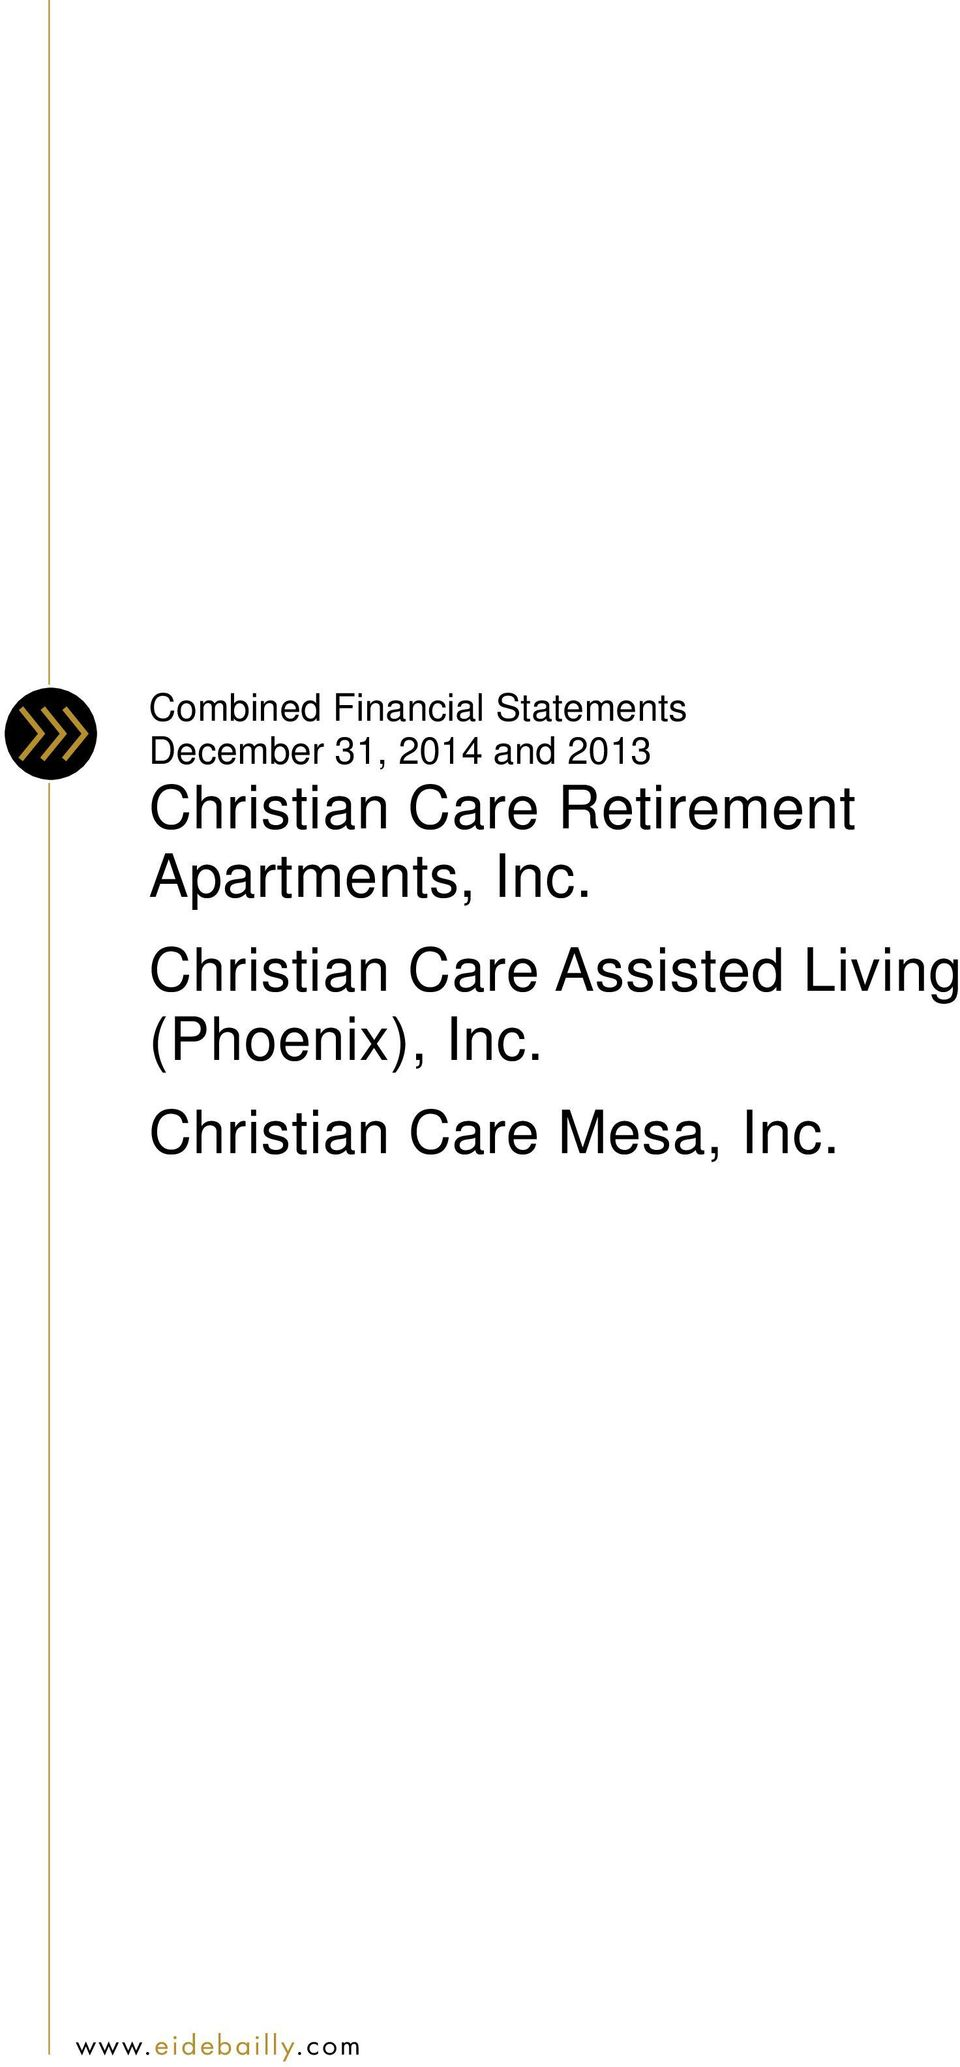 Christian Care Assisted Living